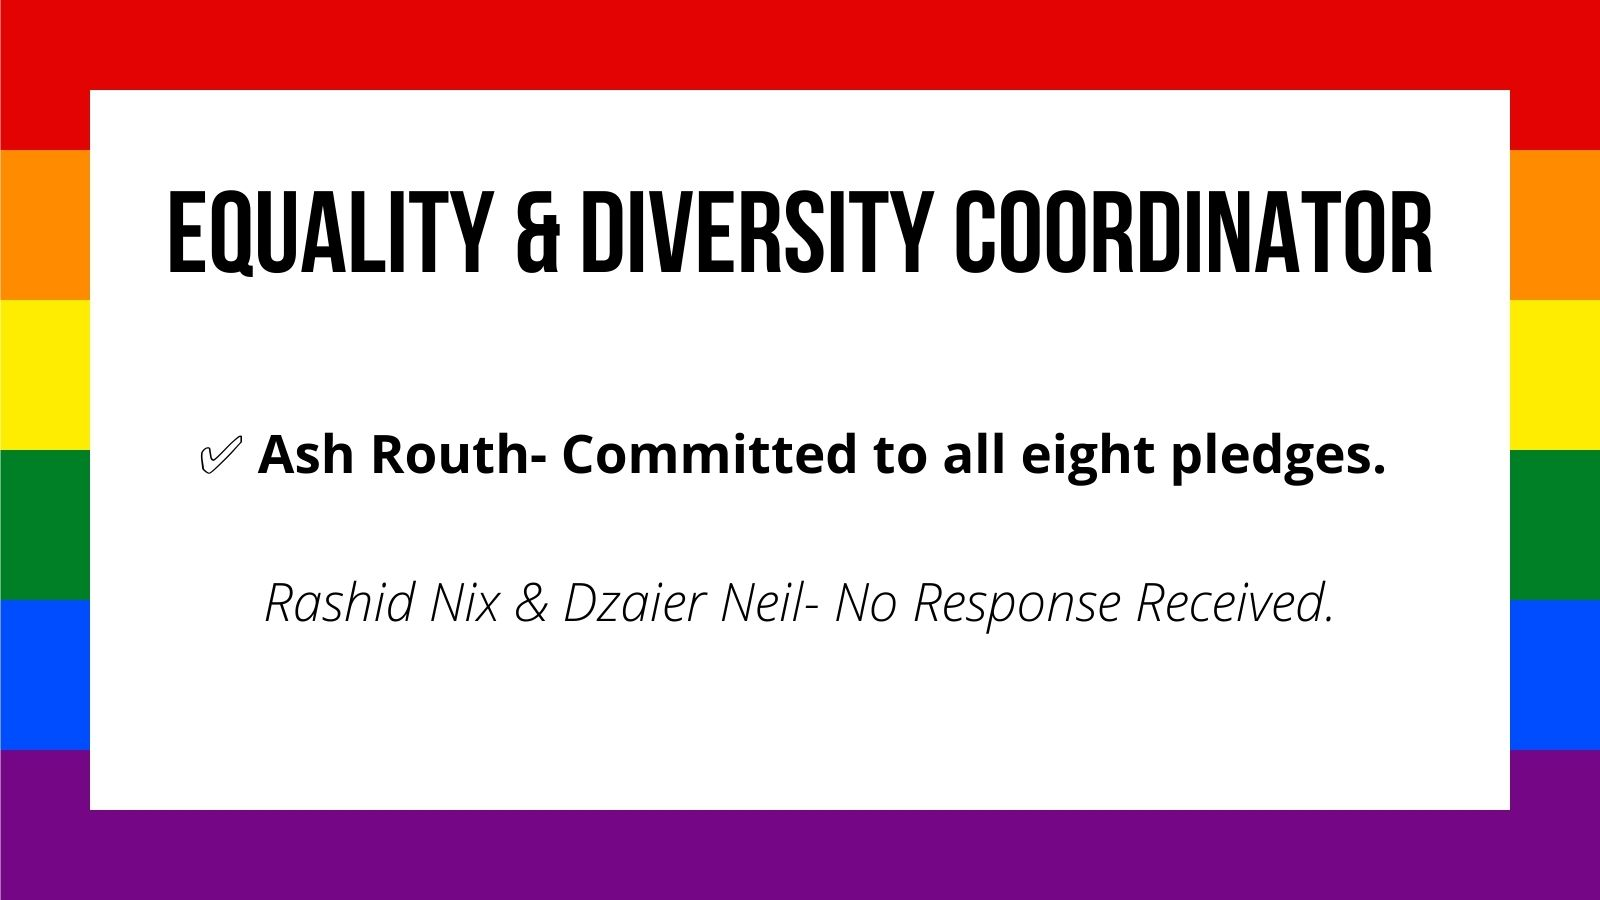 Equality & Diversity Coordinator Ash Routh- Committed to all eight pledges. ✅ Rashid Nix & Dzaier Neil- No Response Received